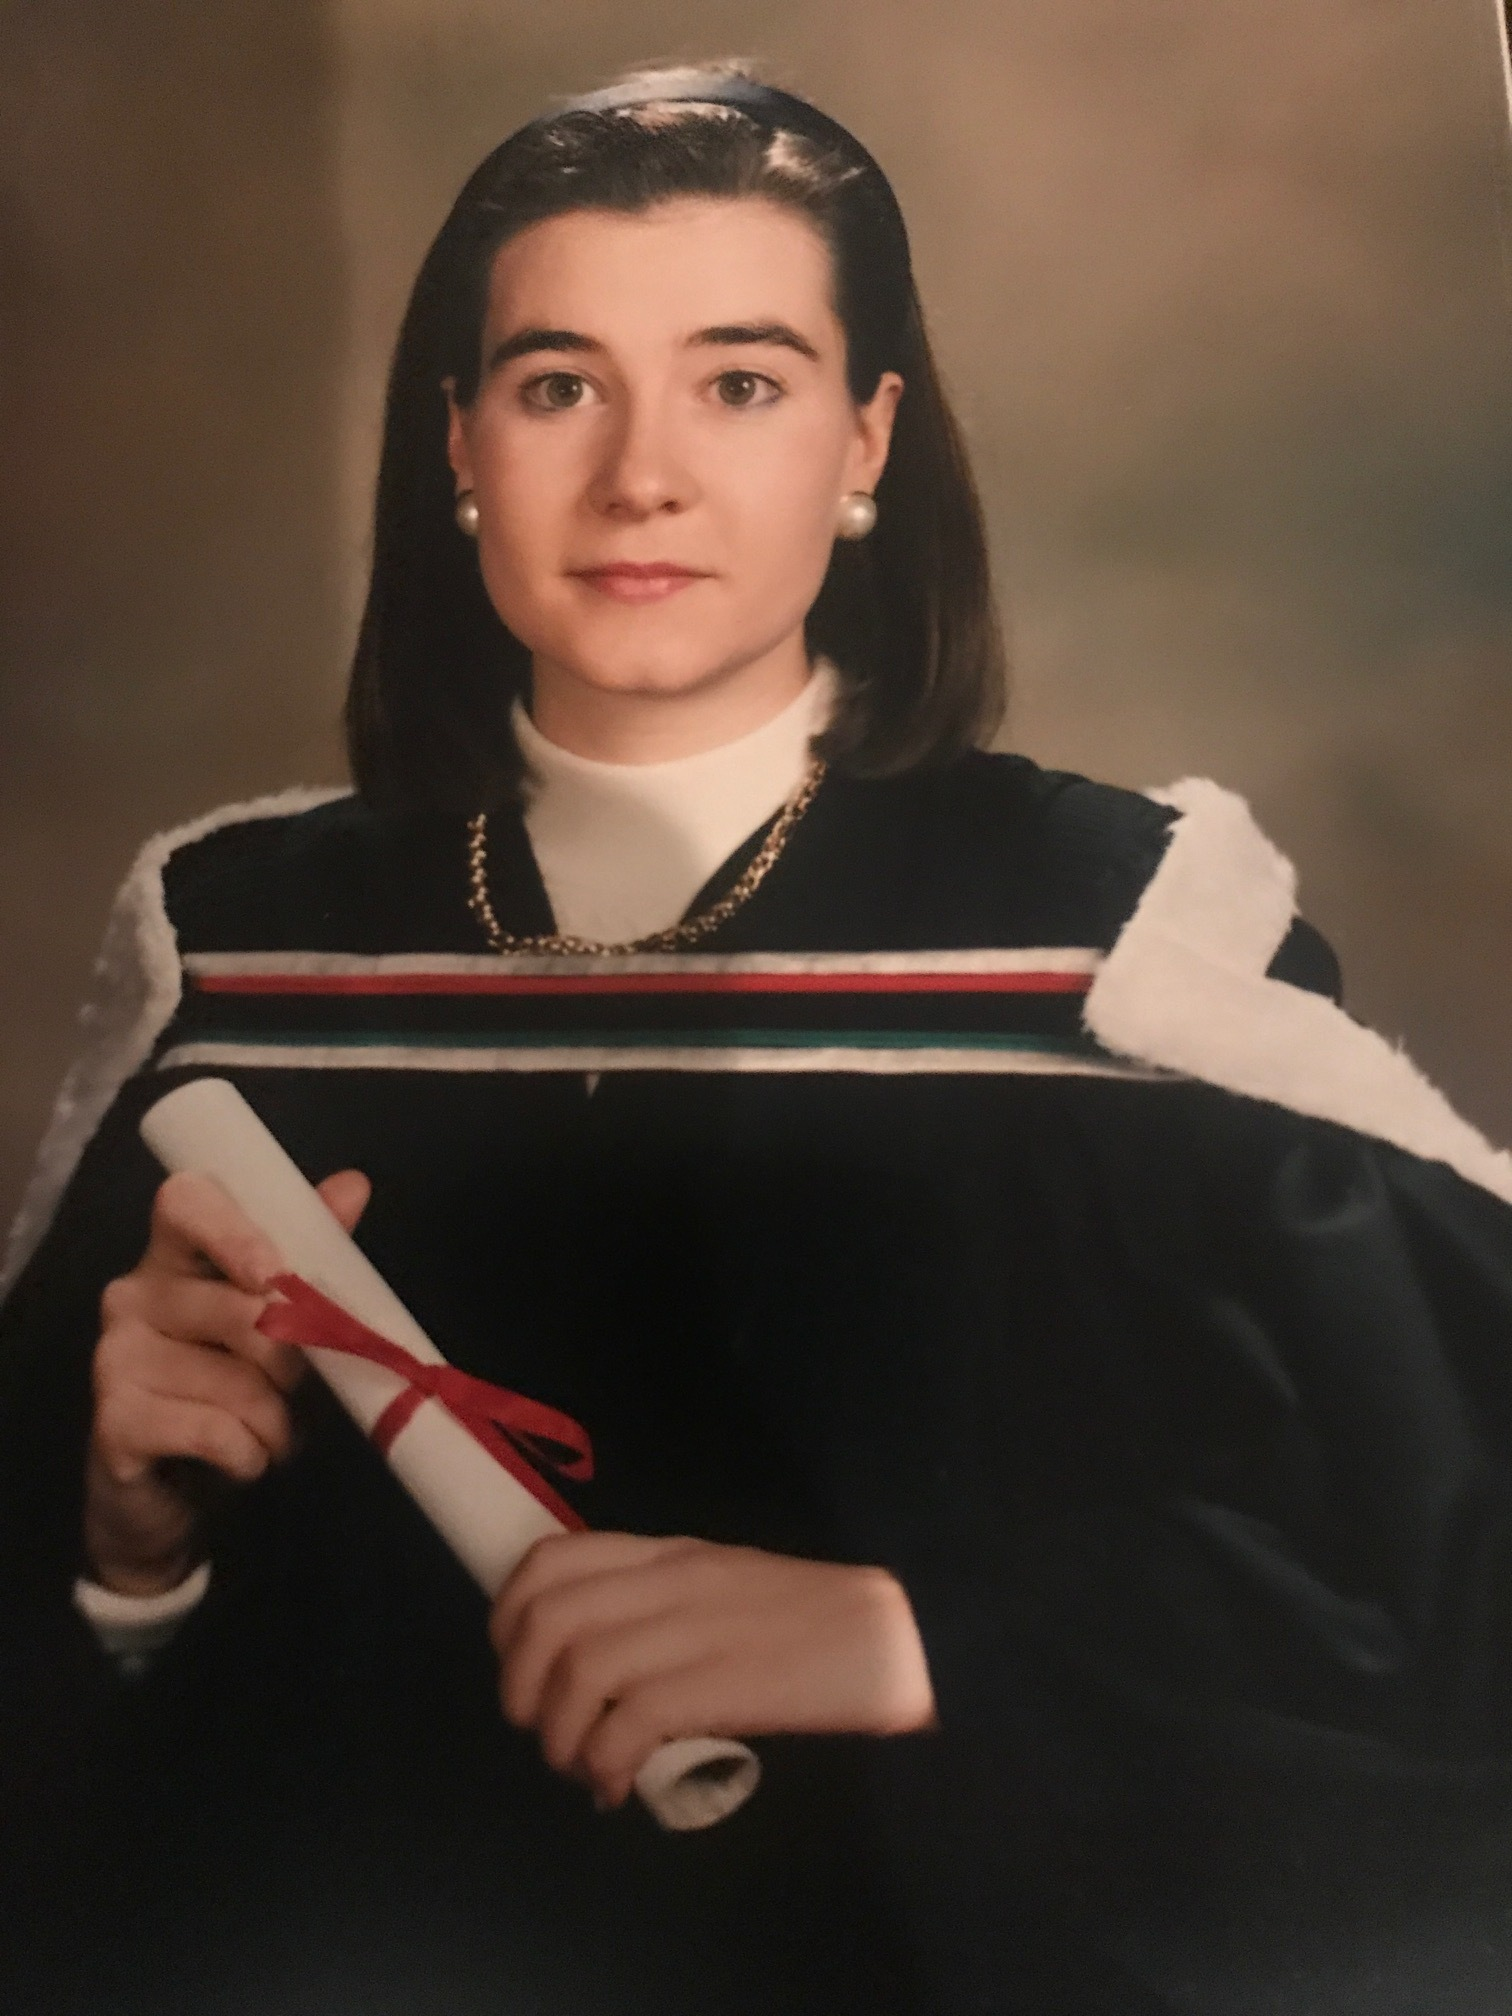 Hélène at her law school graduation in 1993 .